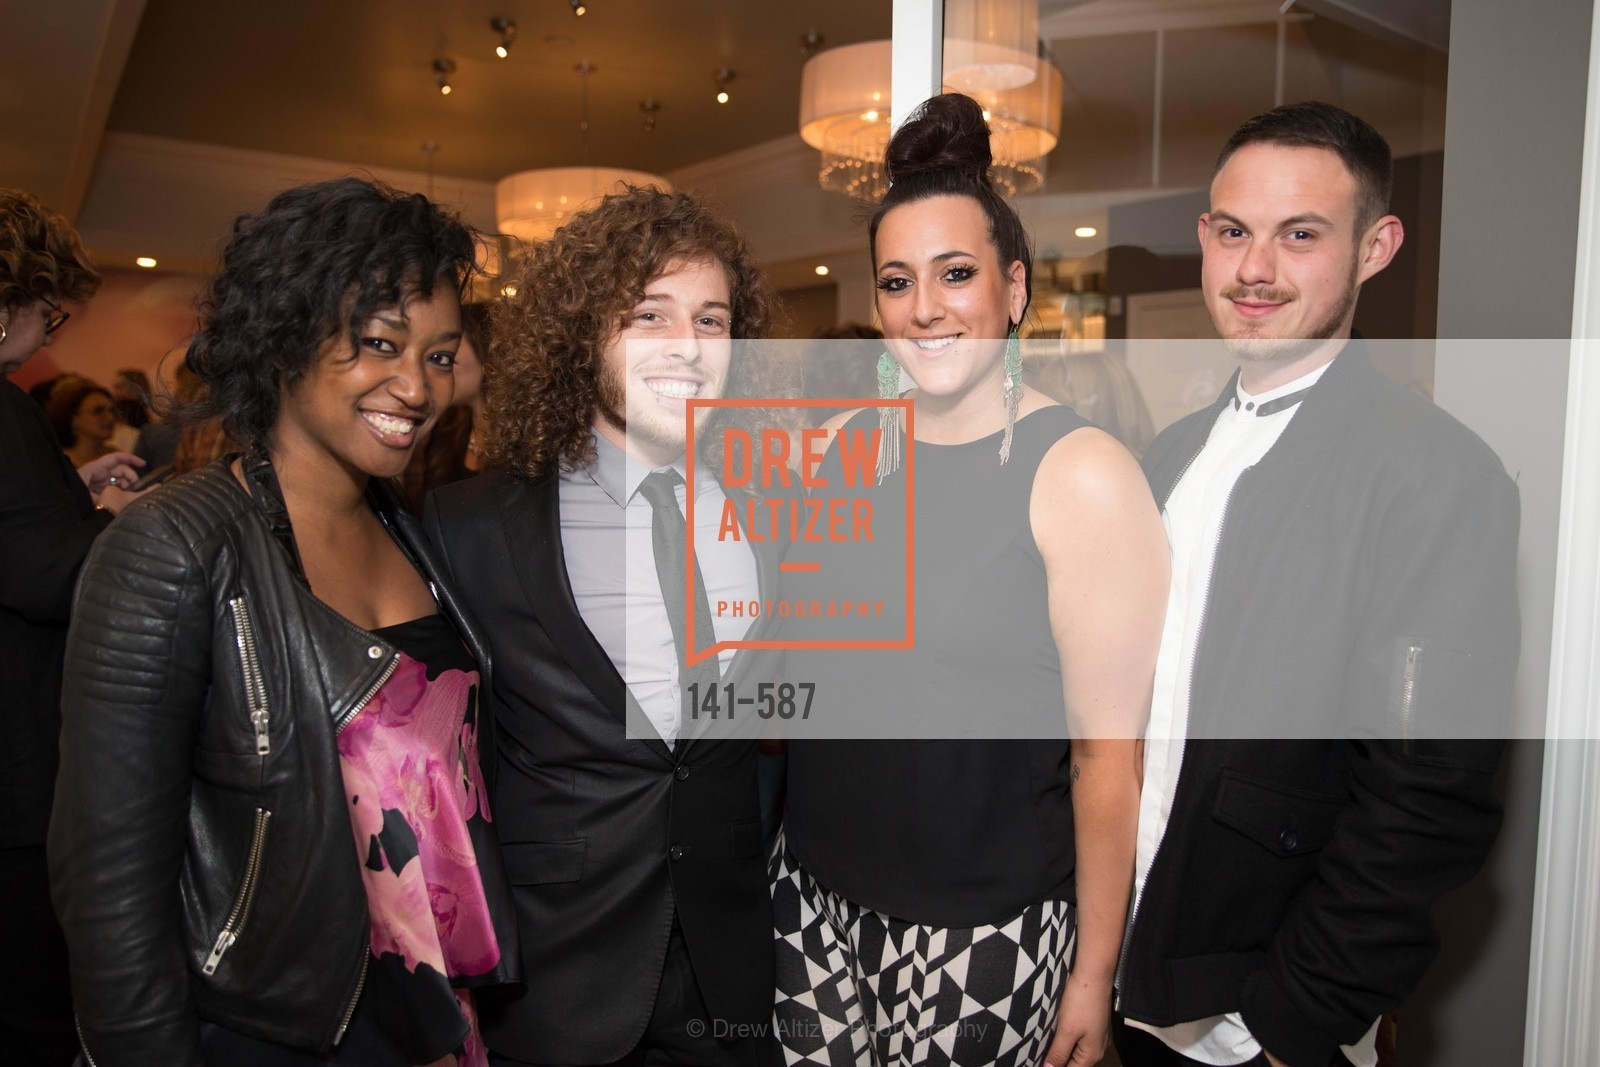 Jodi Rose, Aaron Gluck, Brittany Paz, Anthony Matcenas, BLOOM BLOW DRY BAR Grand Opening Party, US, October 1st, 2014,Drew Altizer, Drew Altizer Photography, full-service agency, private events, San Francisco photographer, photographer california